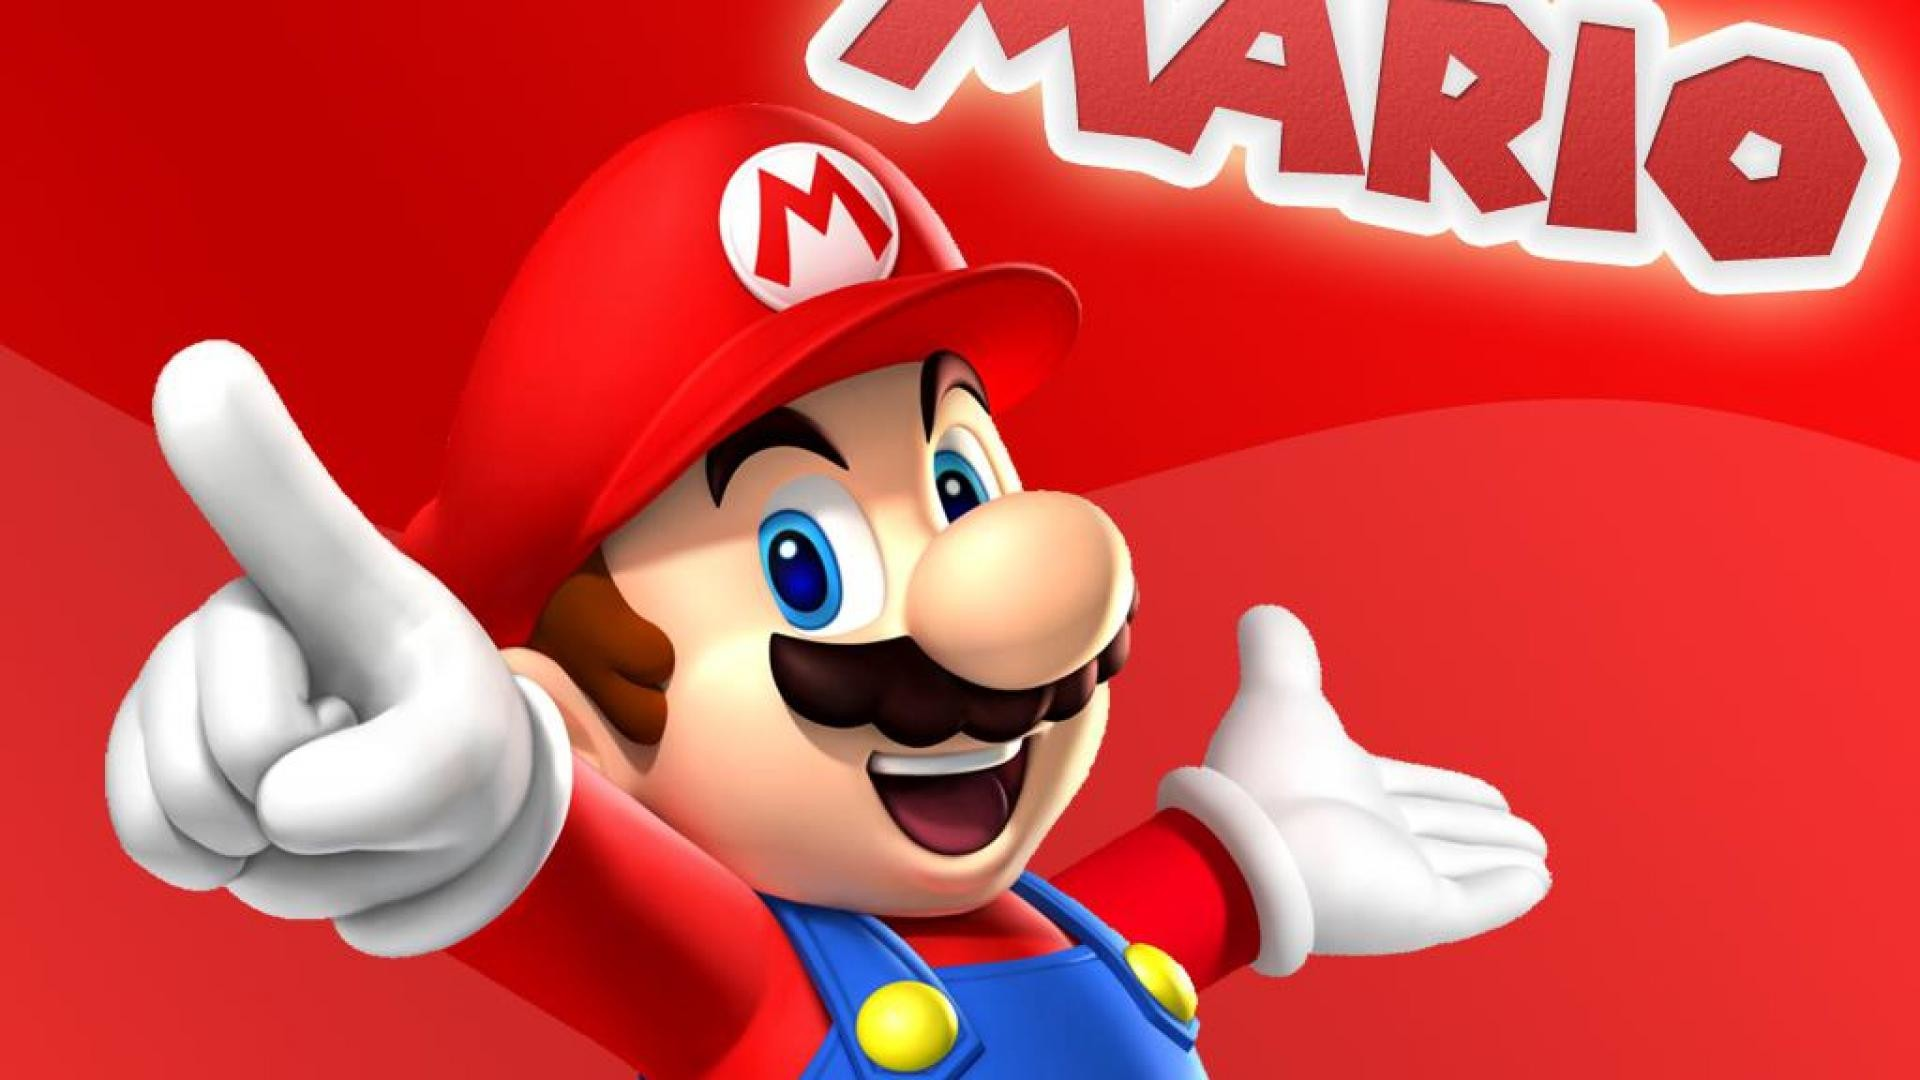 Wallpaper Live Android Super Mario – YouTube | Download Wallpaper |  Pinterest | Android video, Live wallpapers and Wallpaper